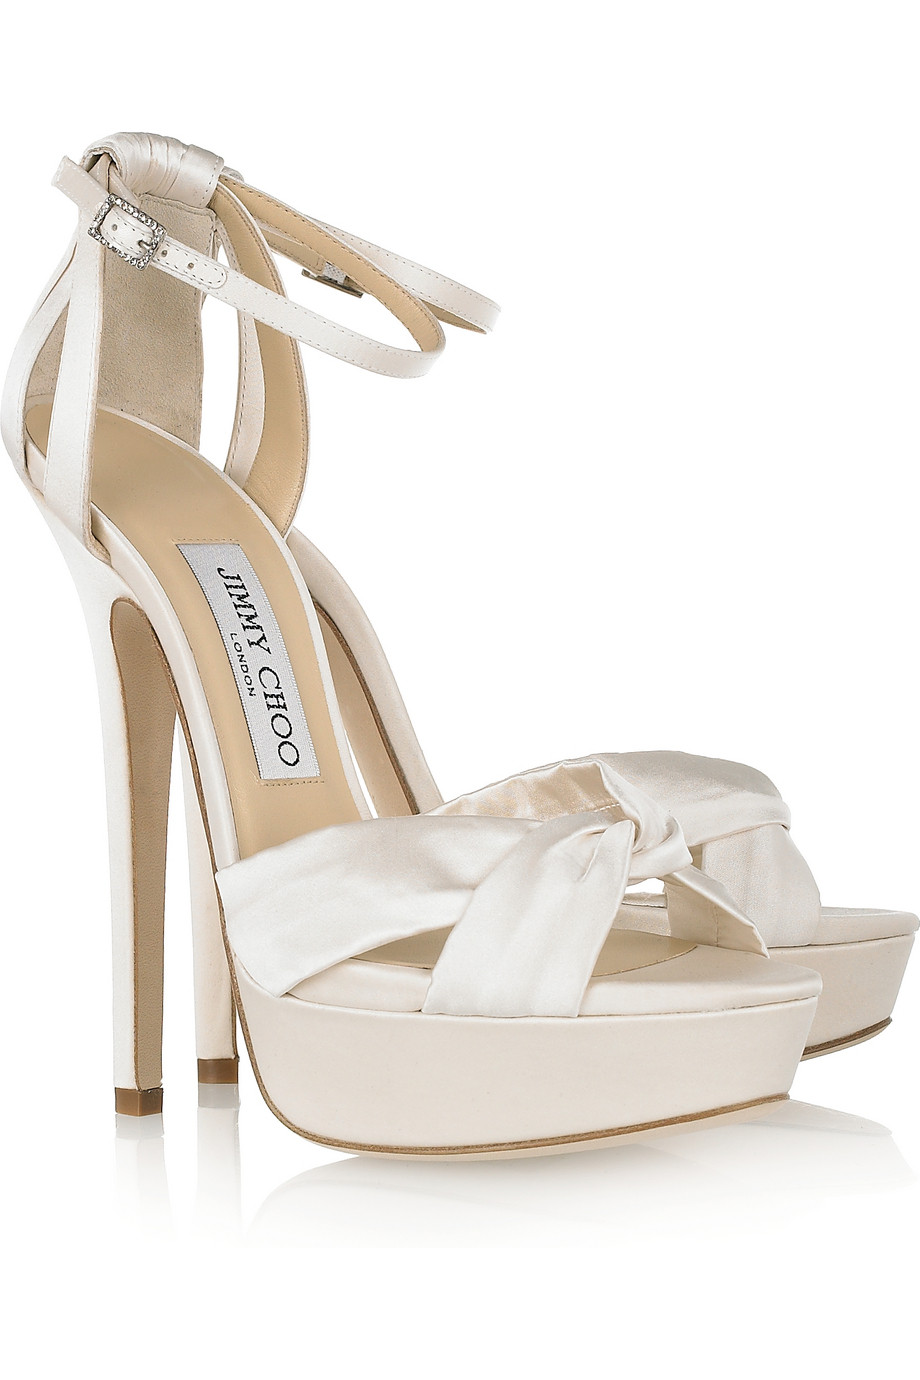 8f069907fa85 ... switzerland jimmy choo fairy satin platform sandals in white lyst a8792  37dd6